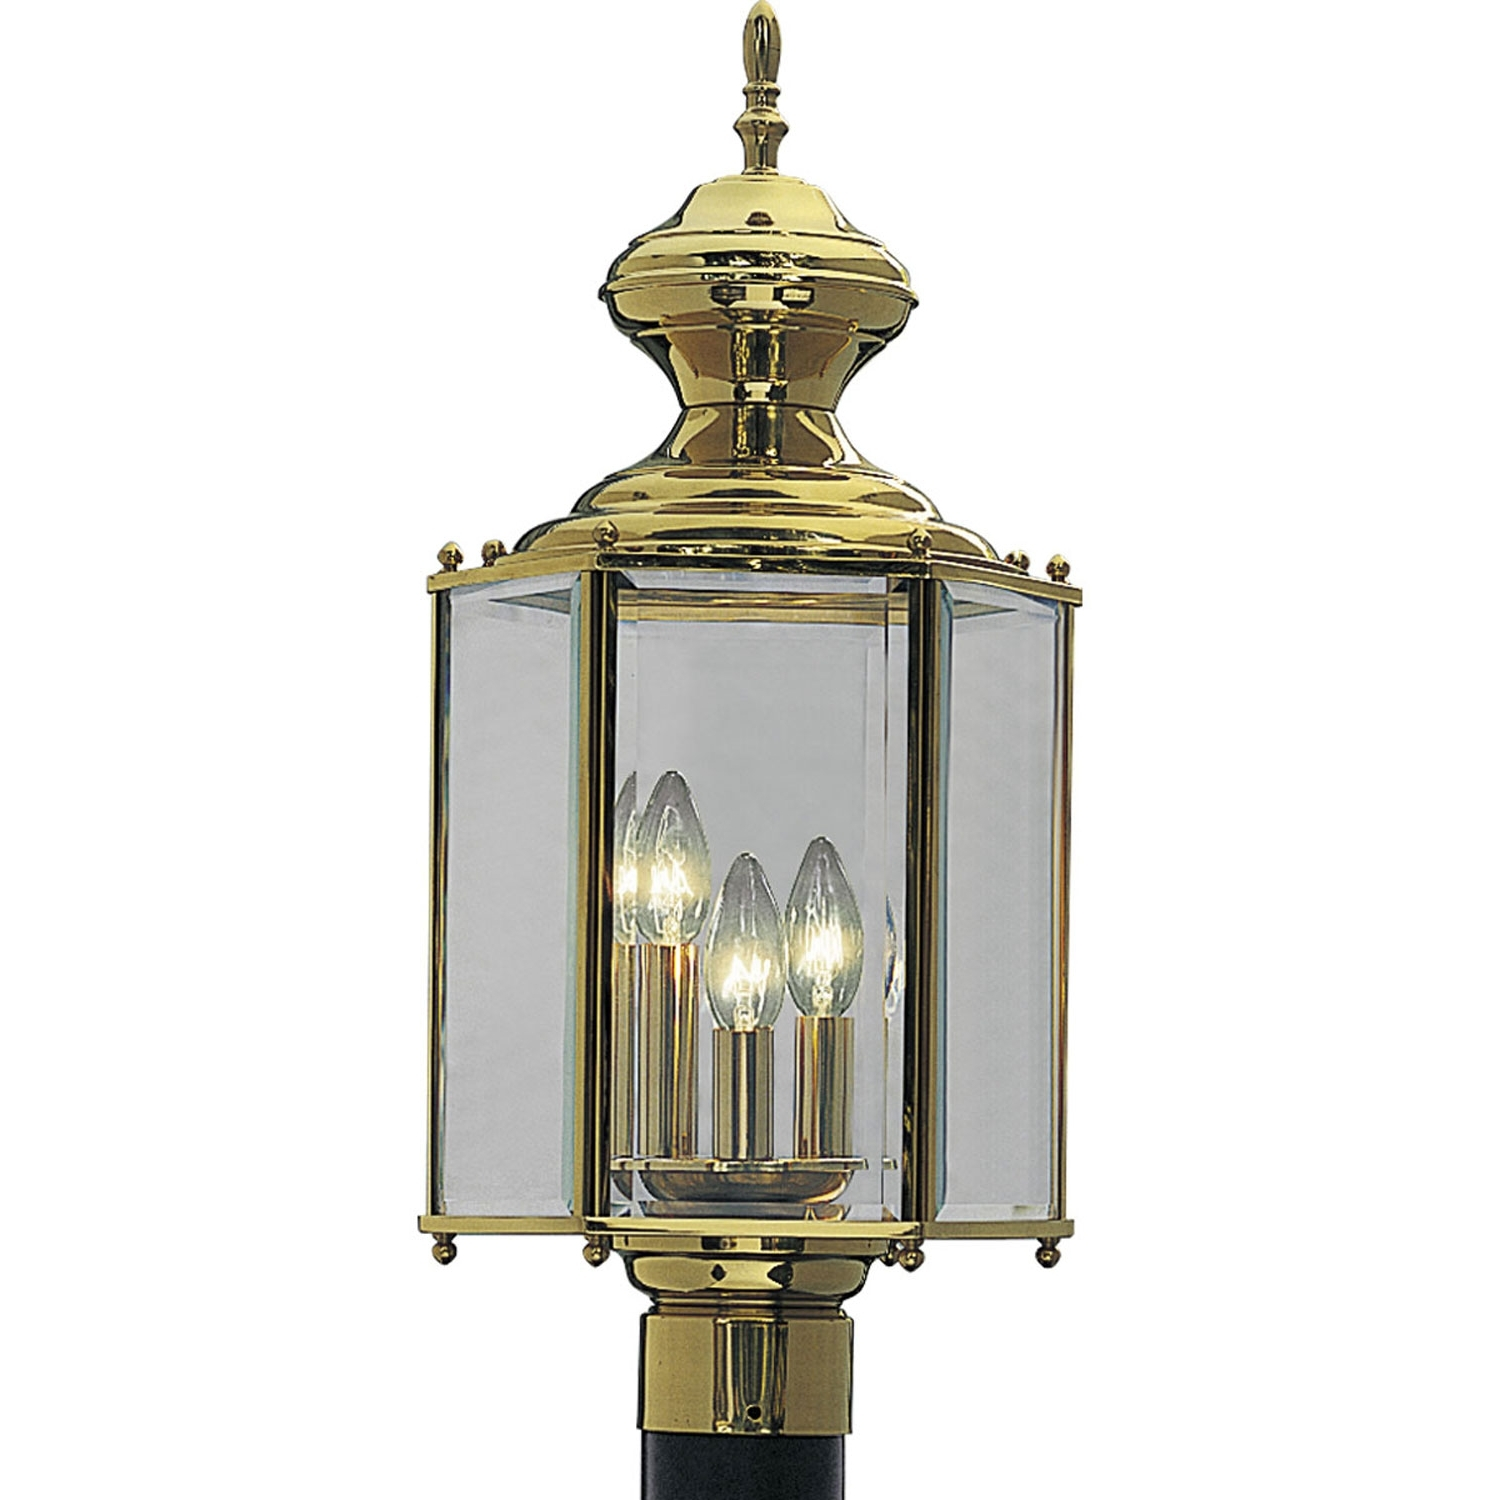 Brass Outdoor Lanterns With Regard To Best And Newest Progress Lighting P5432 10: Brassguard Lanterns Polished Brass Three (View 17 of 20)